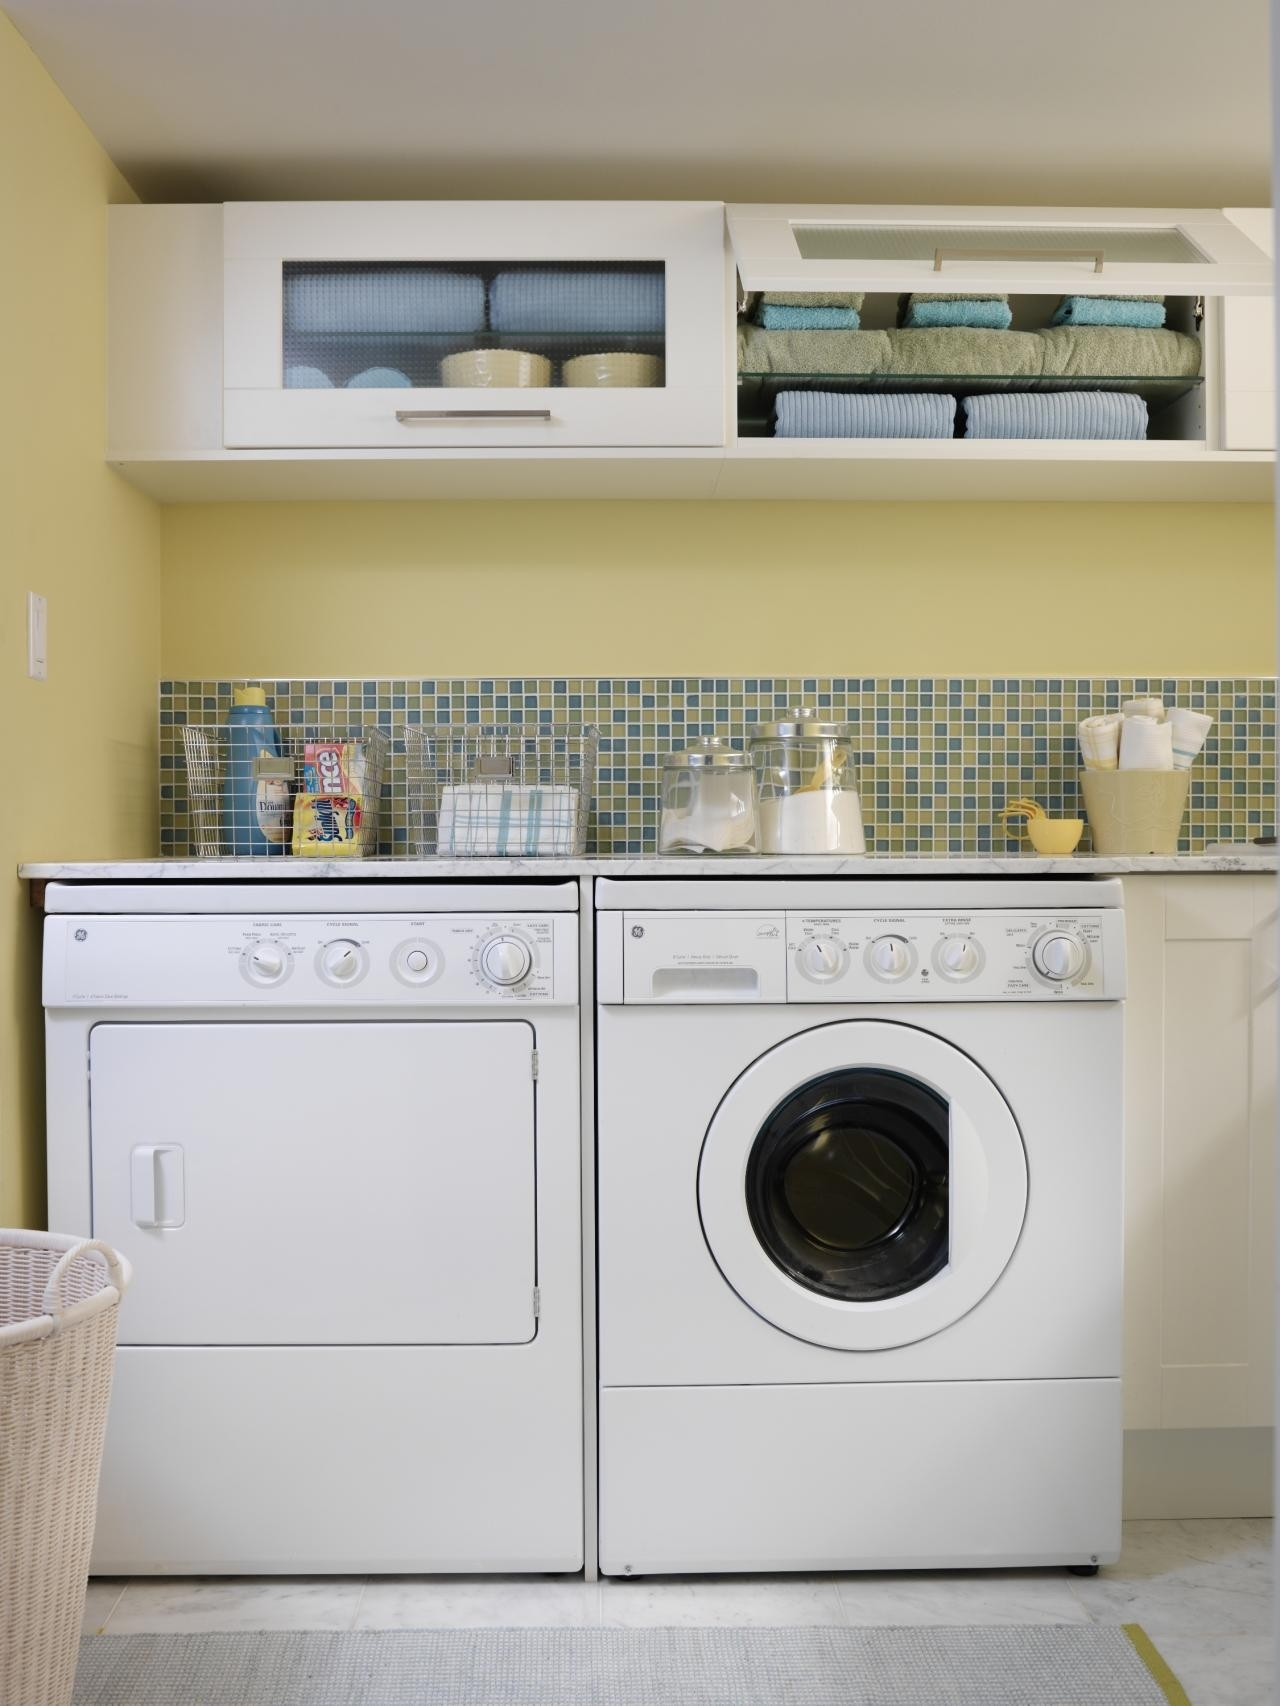 10 Amazing Ideas For Small Laundry Room %name 2020